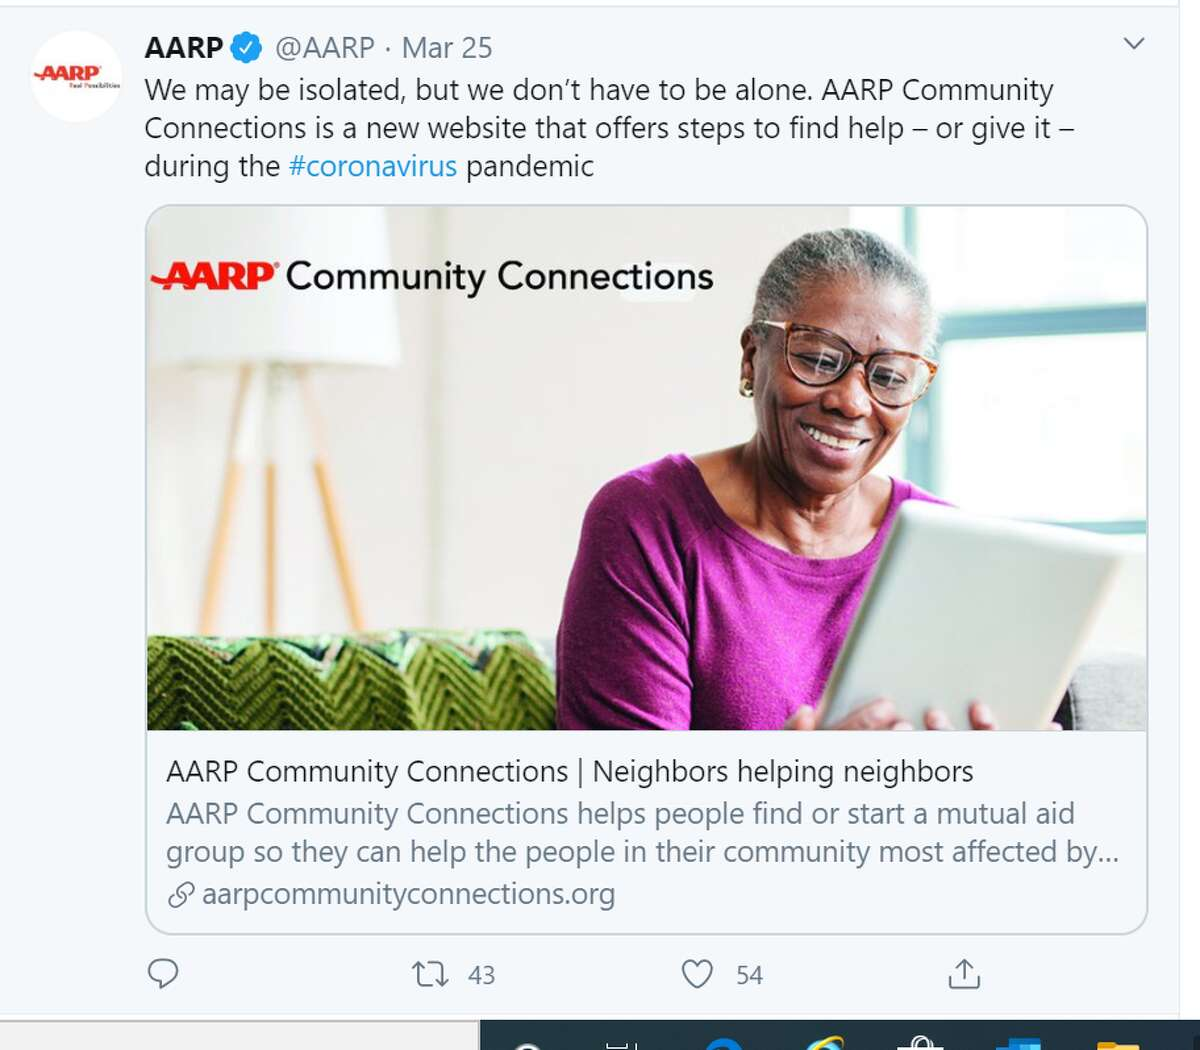 AARP AARP has launched a new online service designed to help volunteers connnect with users to provide the various support needed to those most affected by the COVID-19 outbreak.